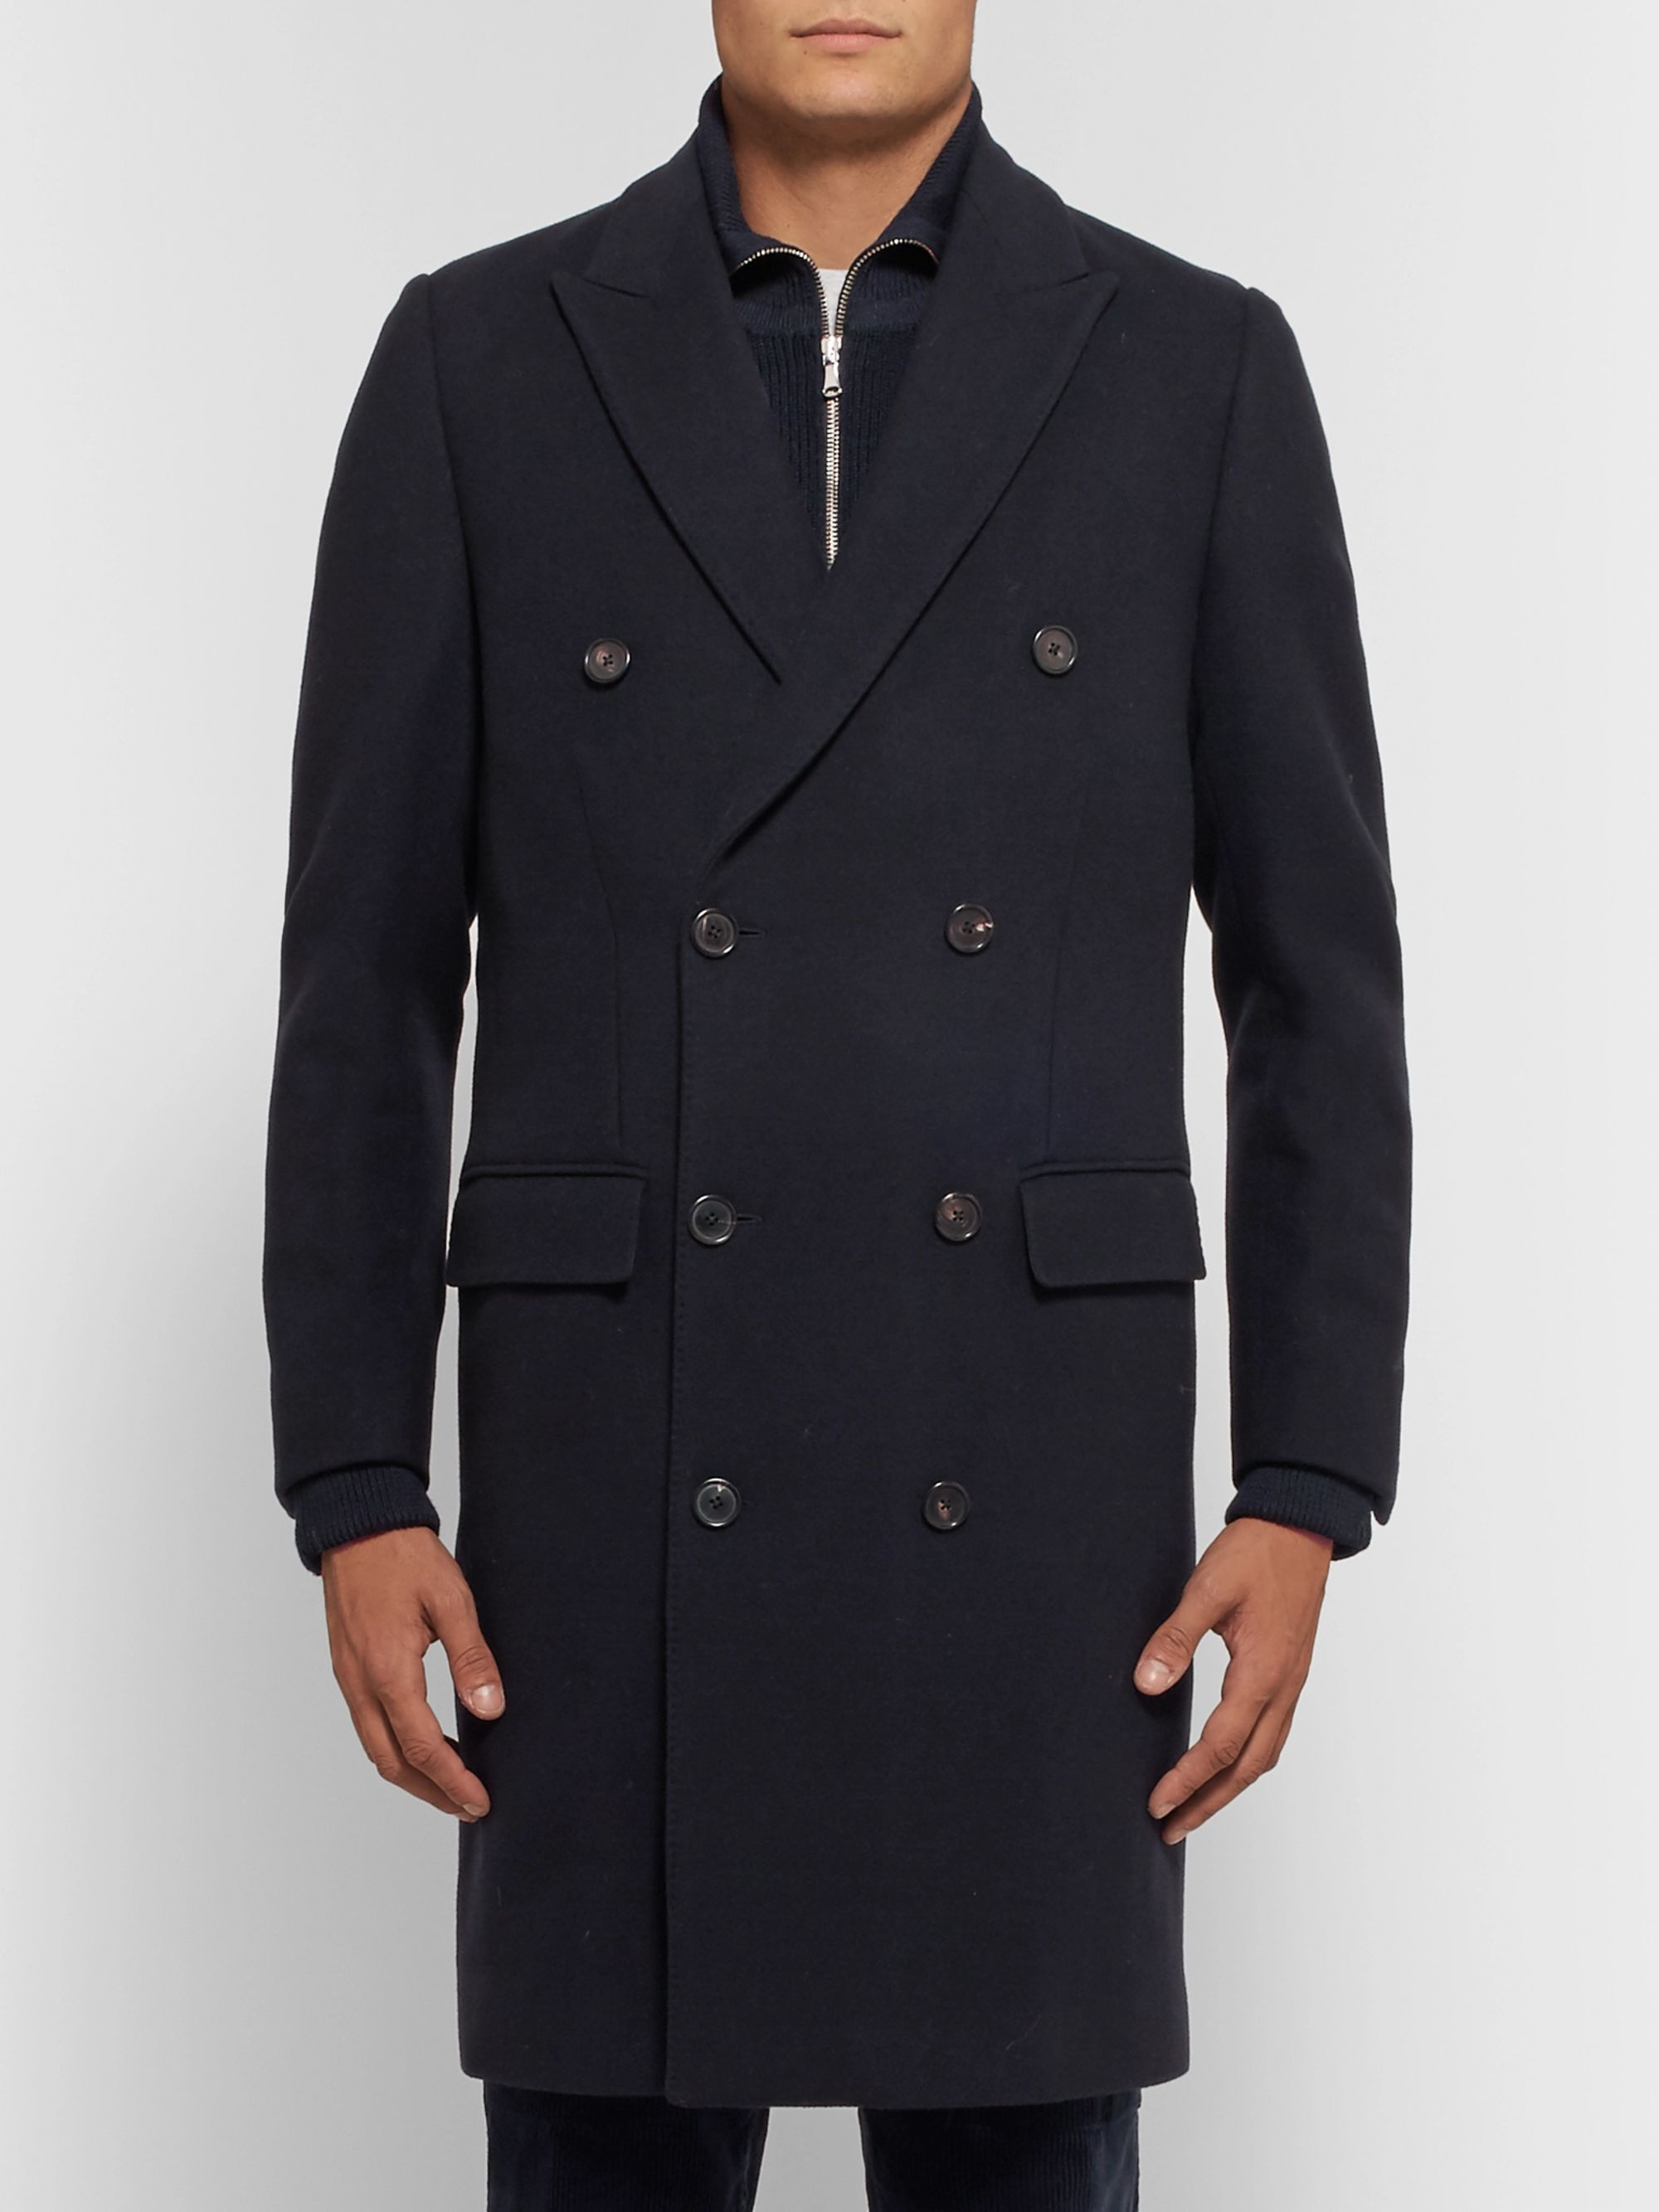 SALLE PRIVÉE Ives Double-Breasted Wool-Blend Coat